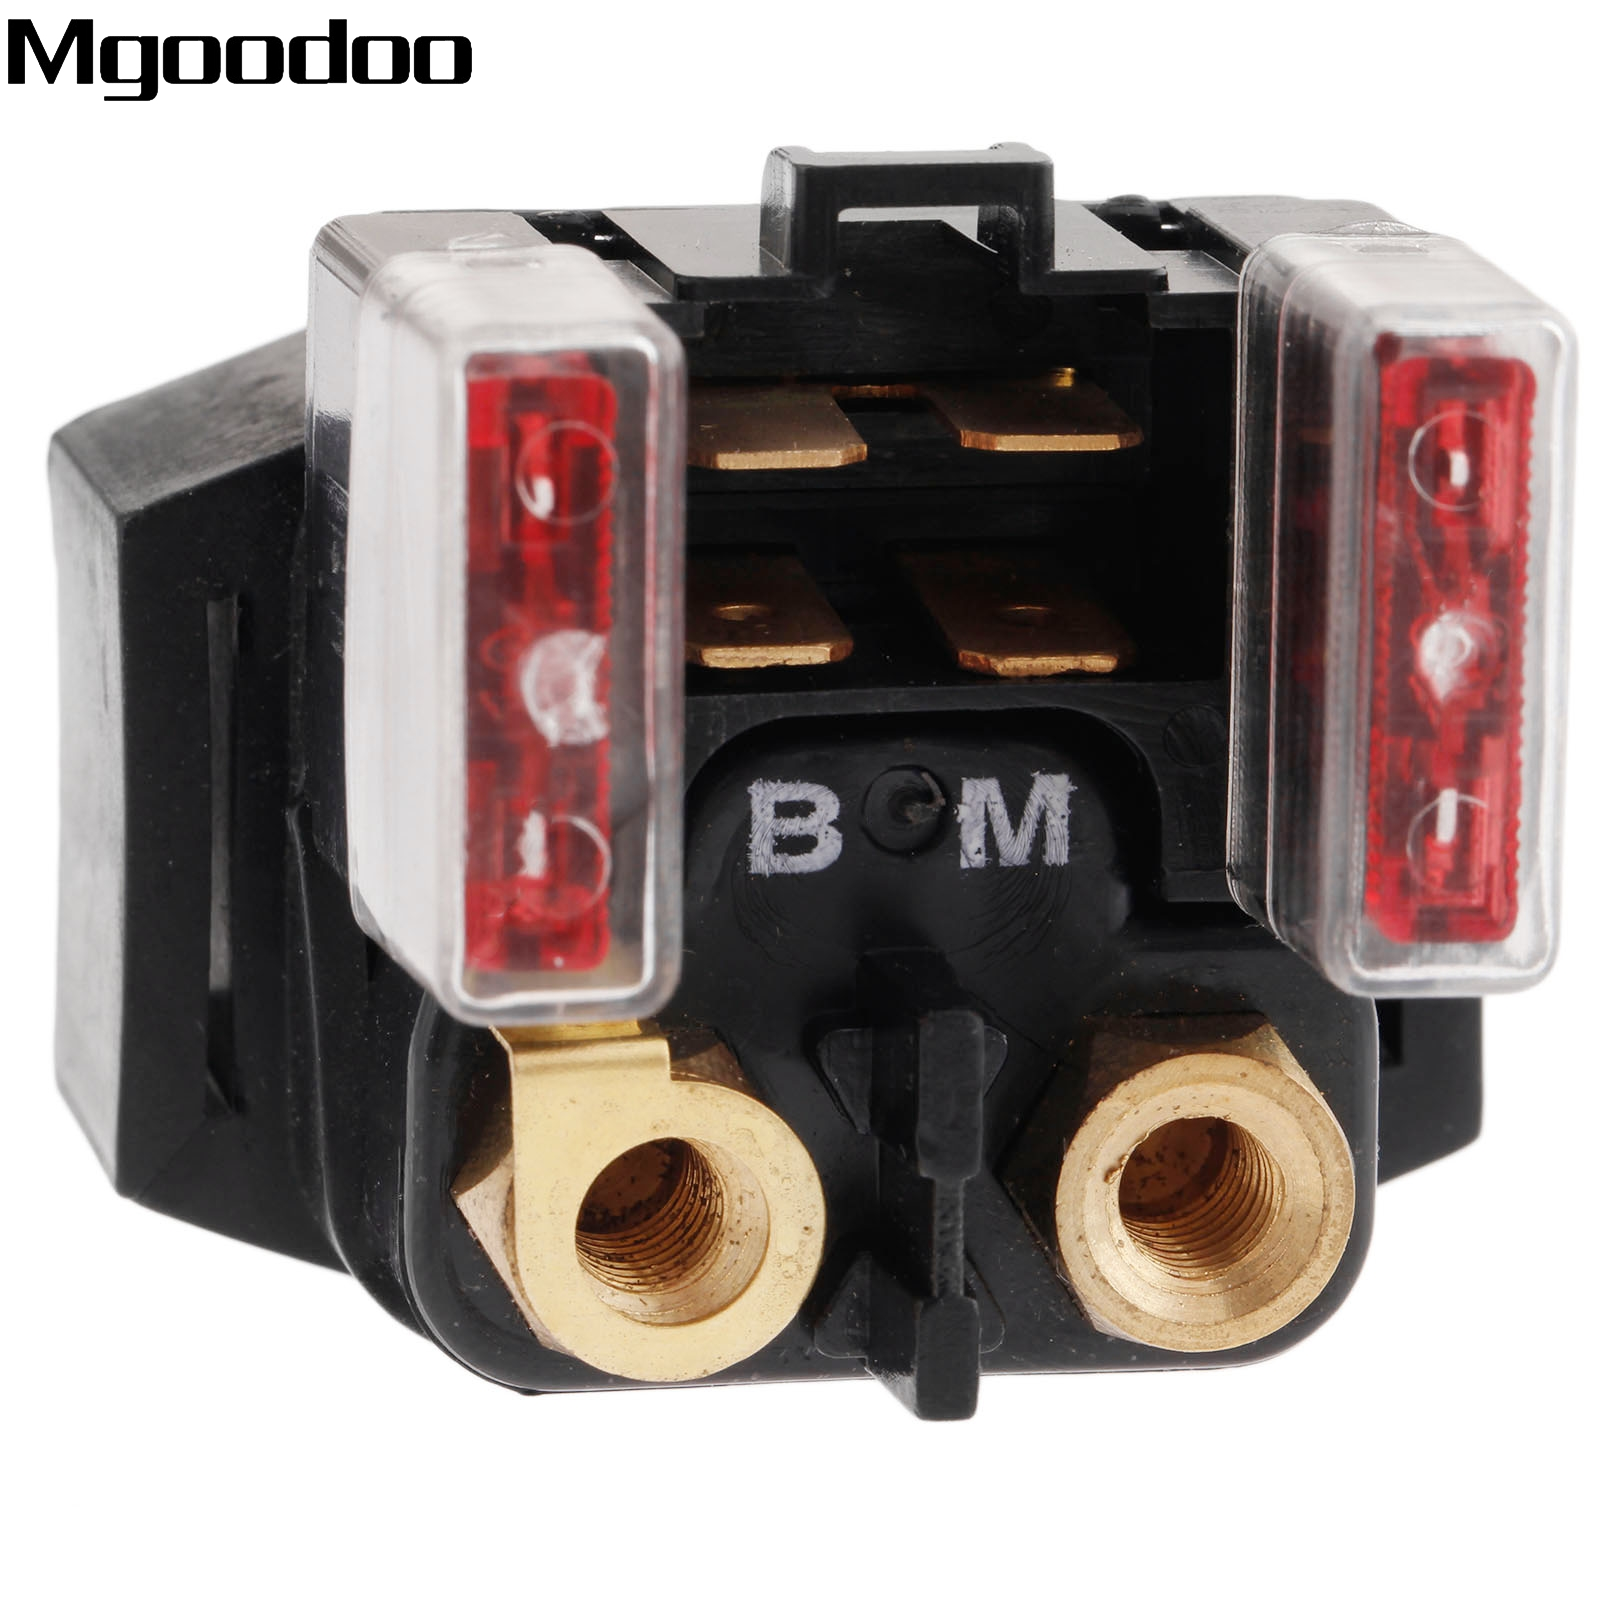 small resolution of mgoodoo motorcycle atv starter relay solenoid for yamaha grizzly 660 yfm660 2002 2008 2003 2004 2005 2006 motor electrical parts in motorbike ingition from